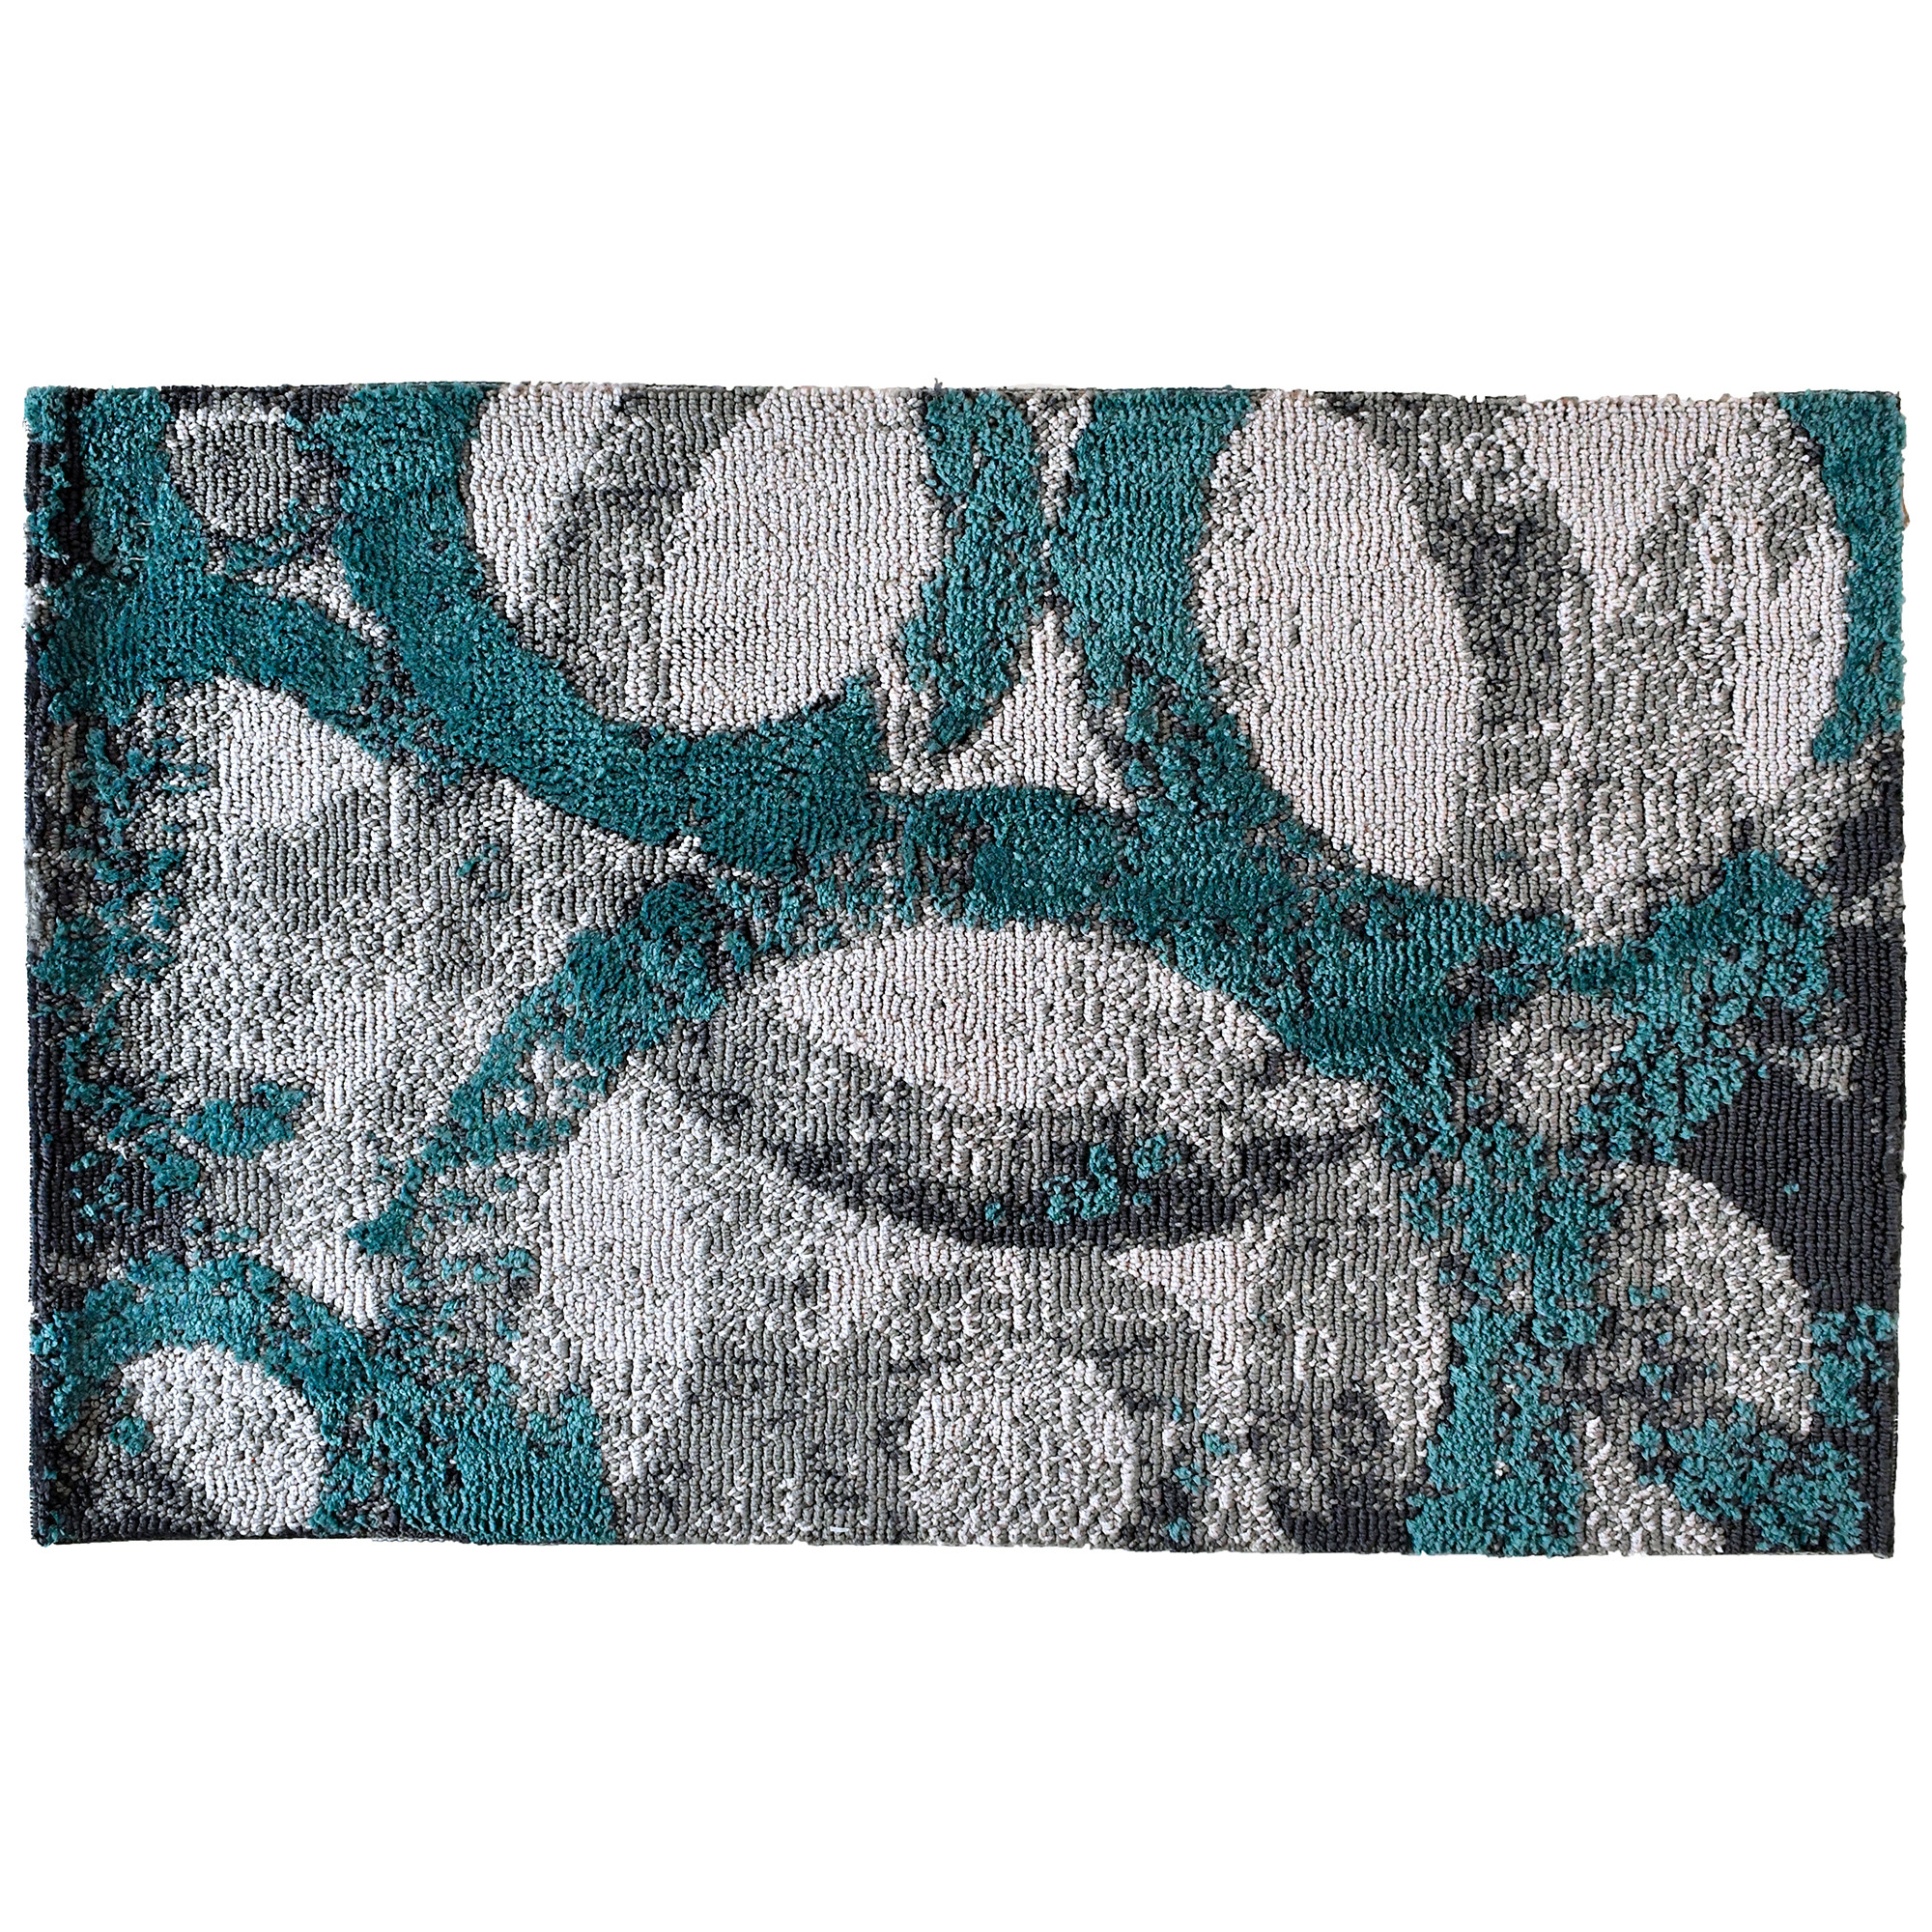 Rings of teal and gray intertwine on this Simple Spaces by Jellybean® accent rug. Artist Michael Mullan's selection of two complementary colors on a layered, intricate design will bring depth to your room. This accent rug is available in two sizes for additional placement options.